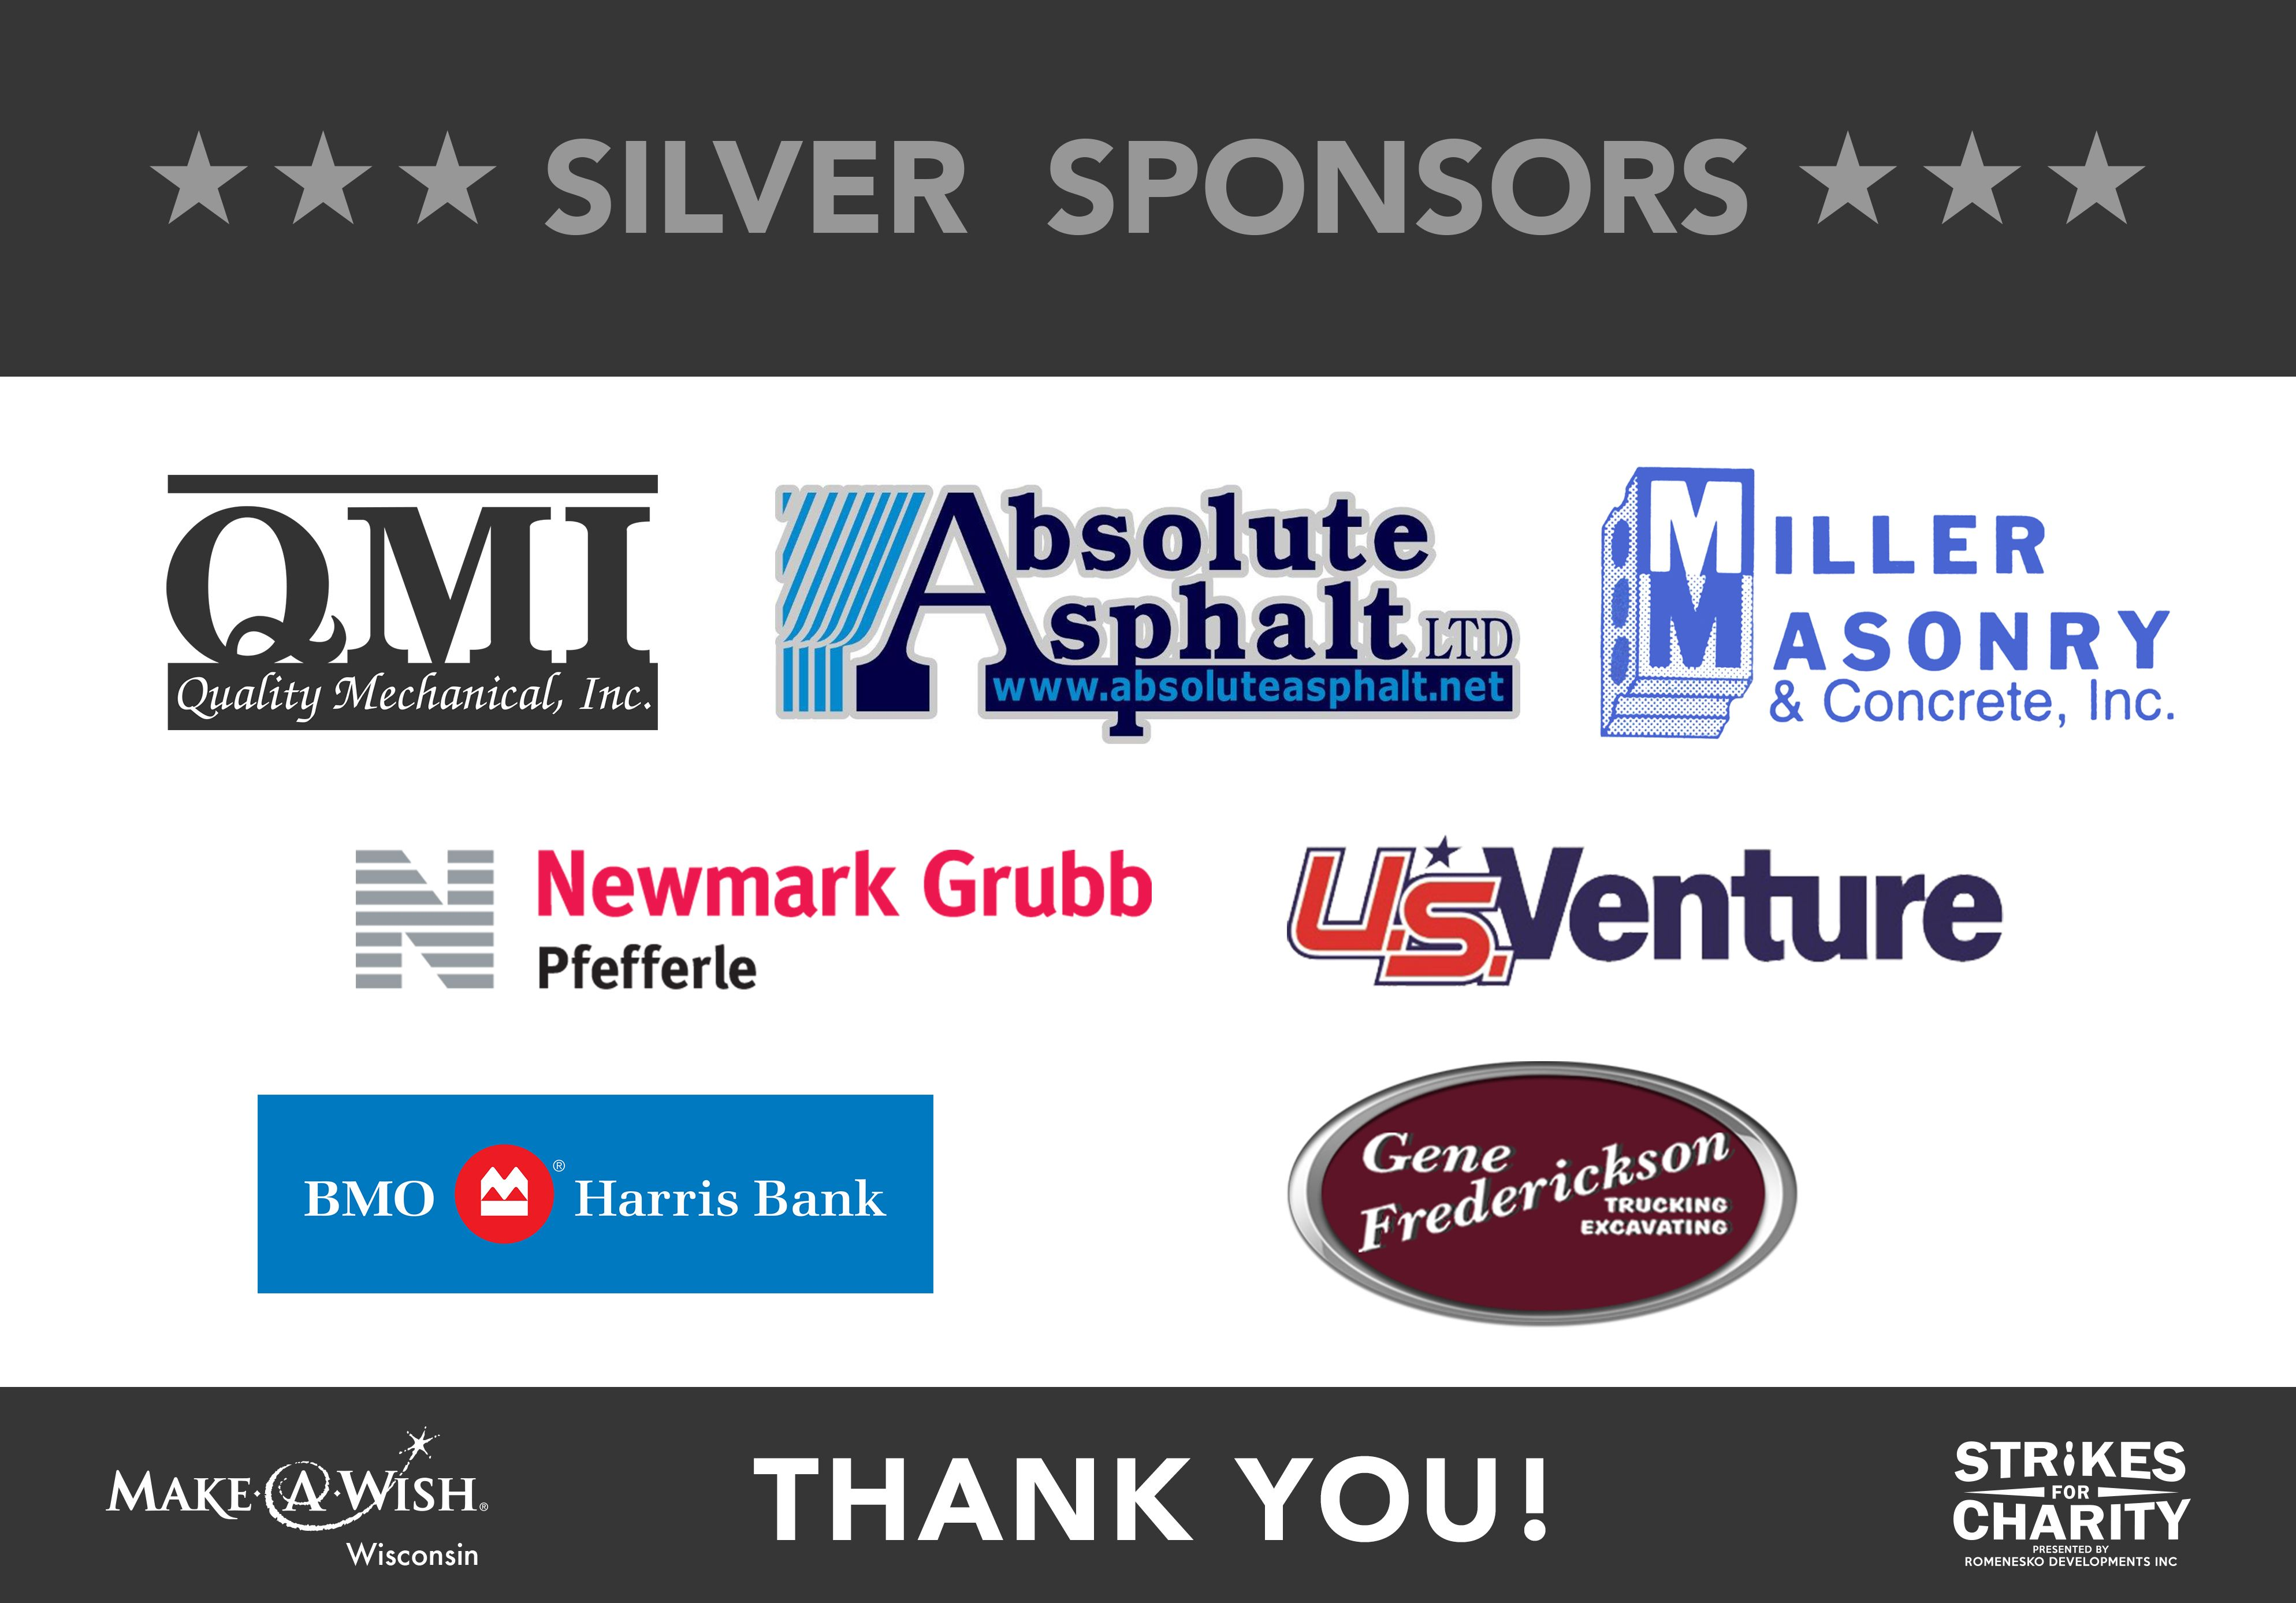 Strikes For Charity 2017 Silver Sponsors